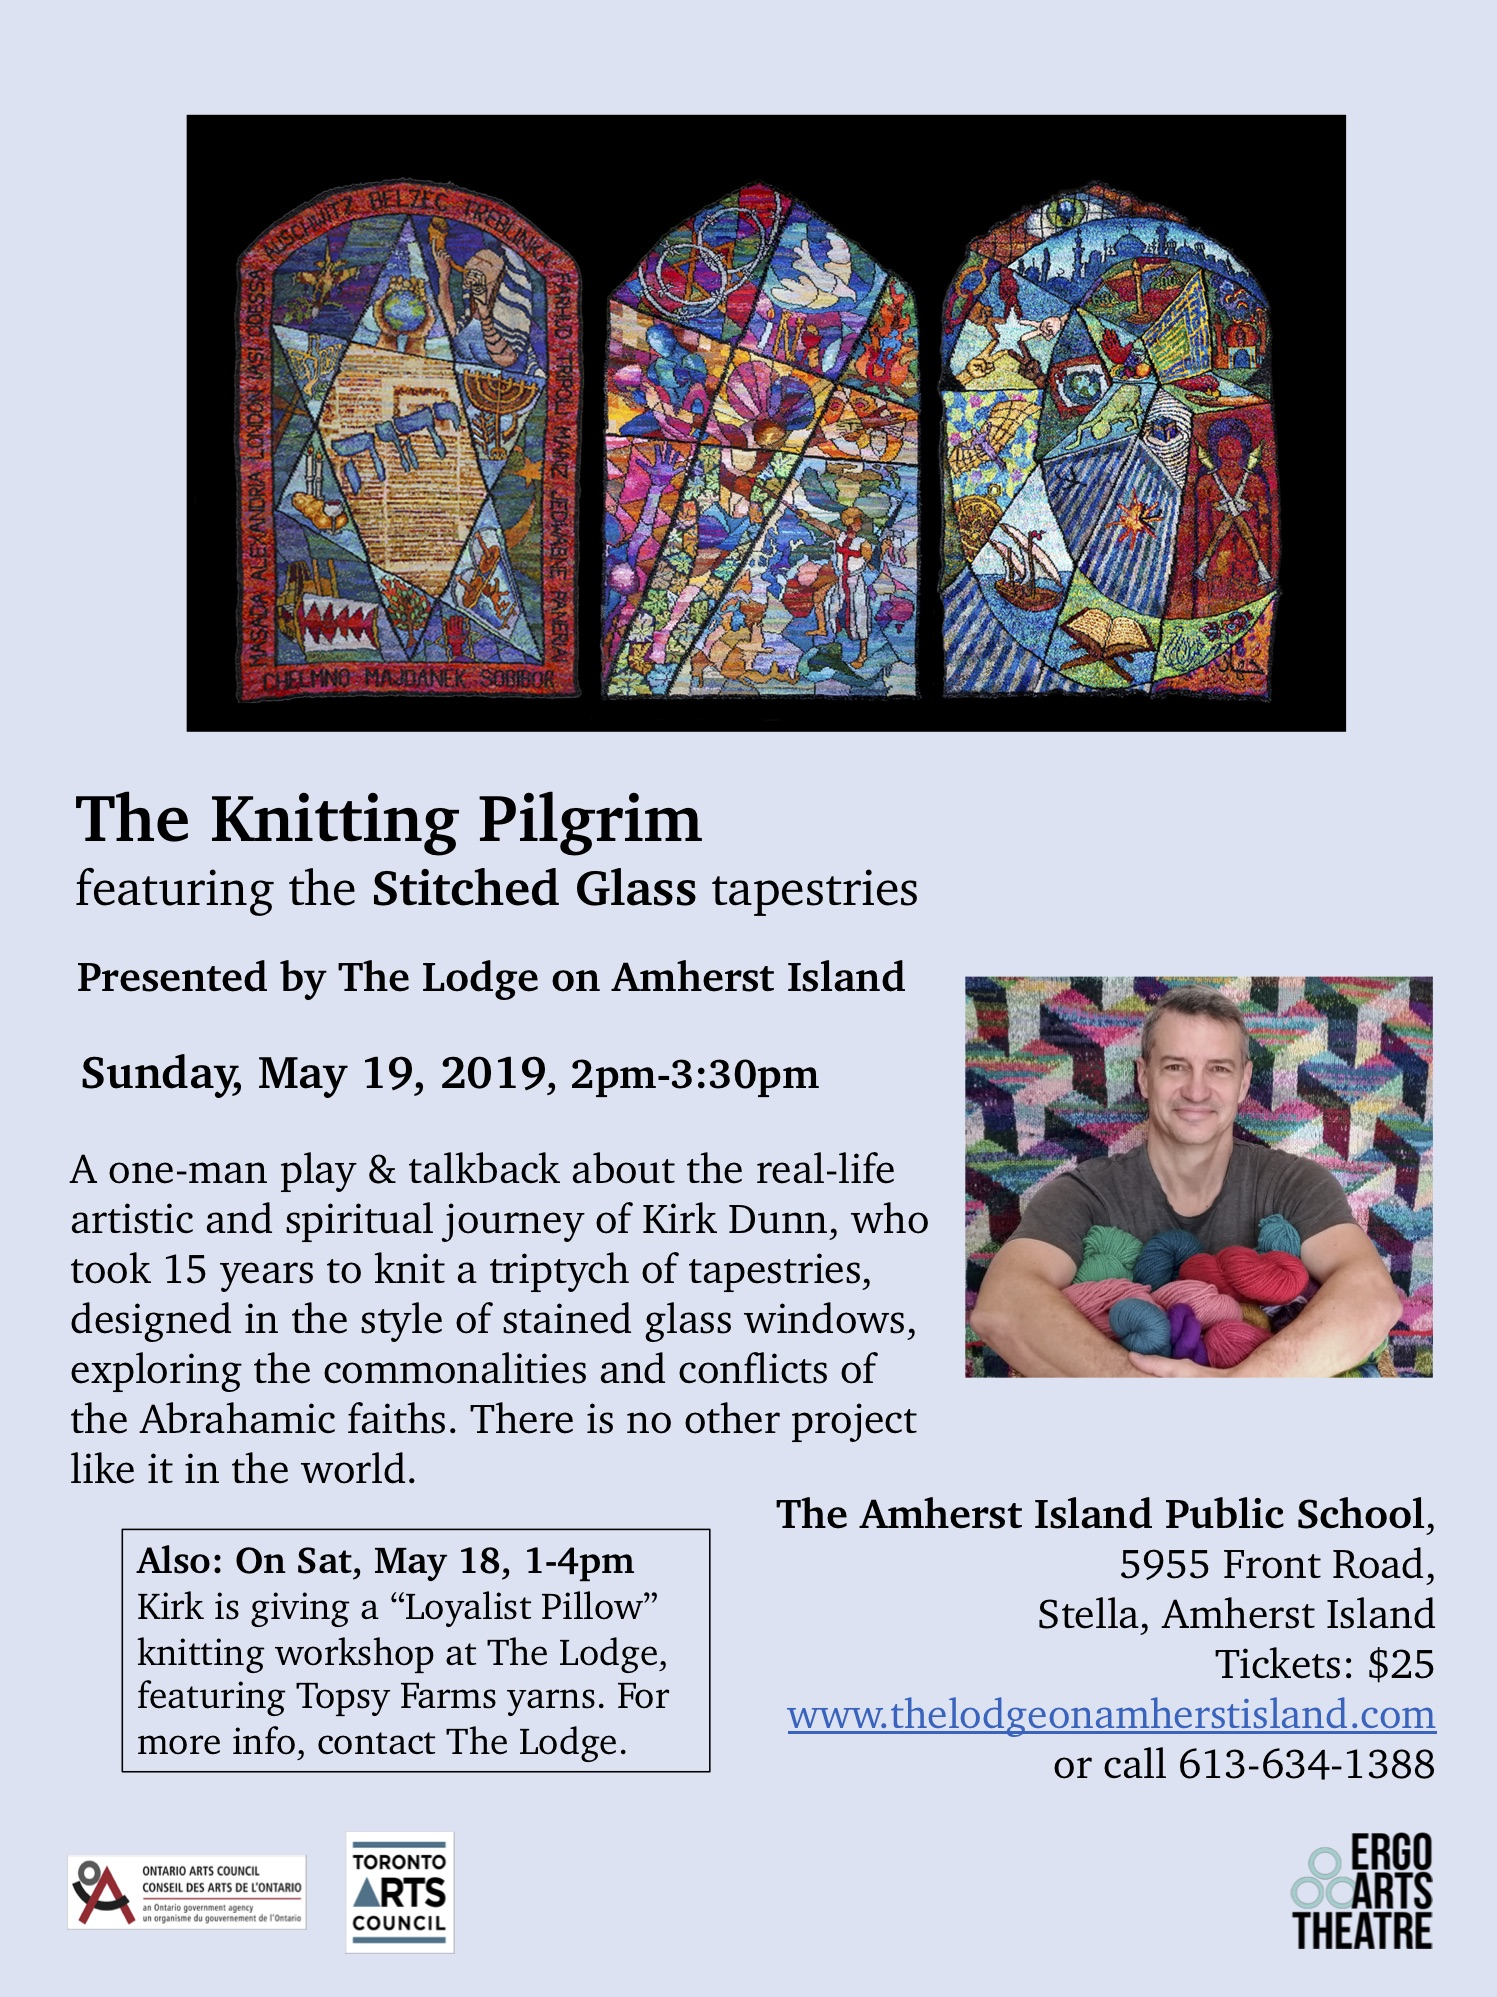 The Knittling Pilgrim @ Amherst Island Community Centre